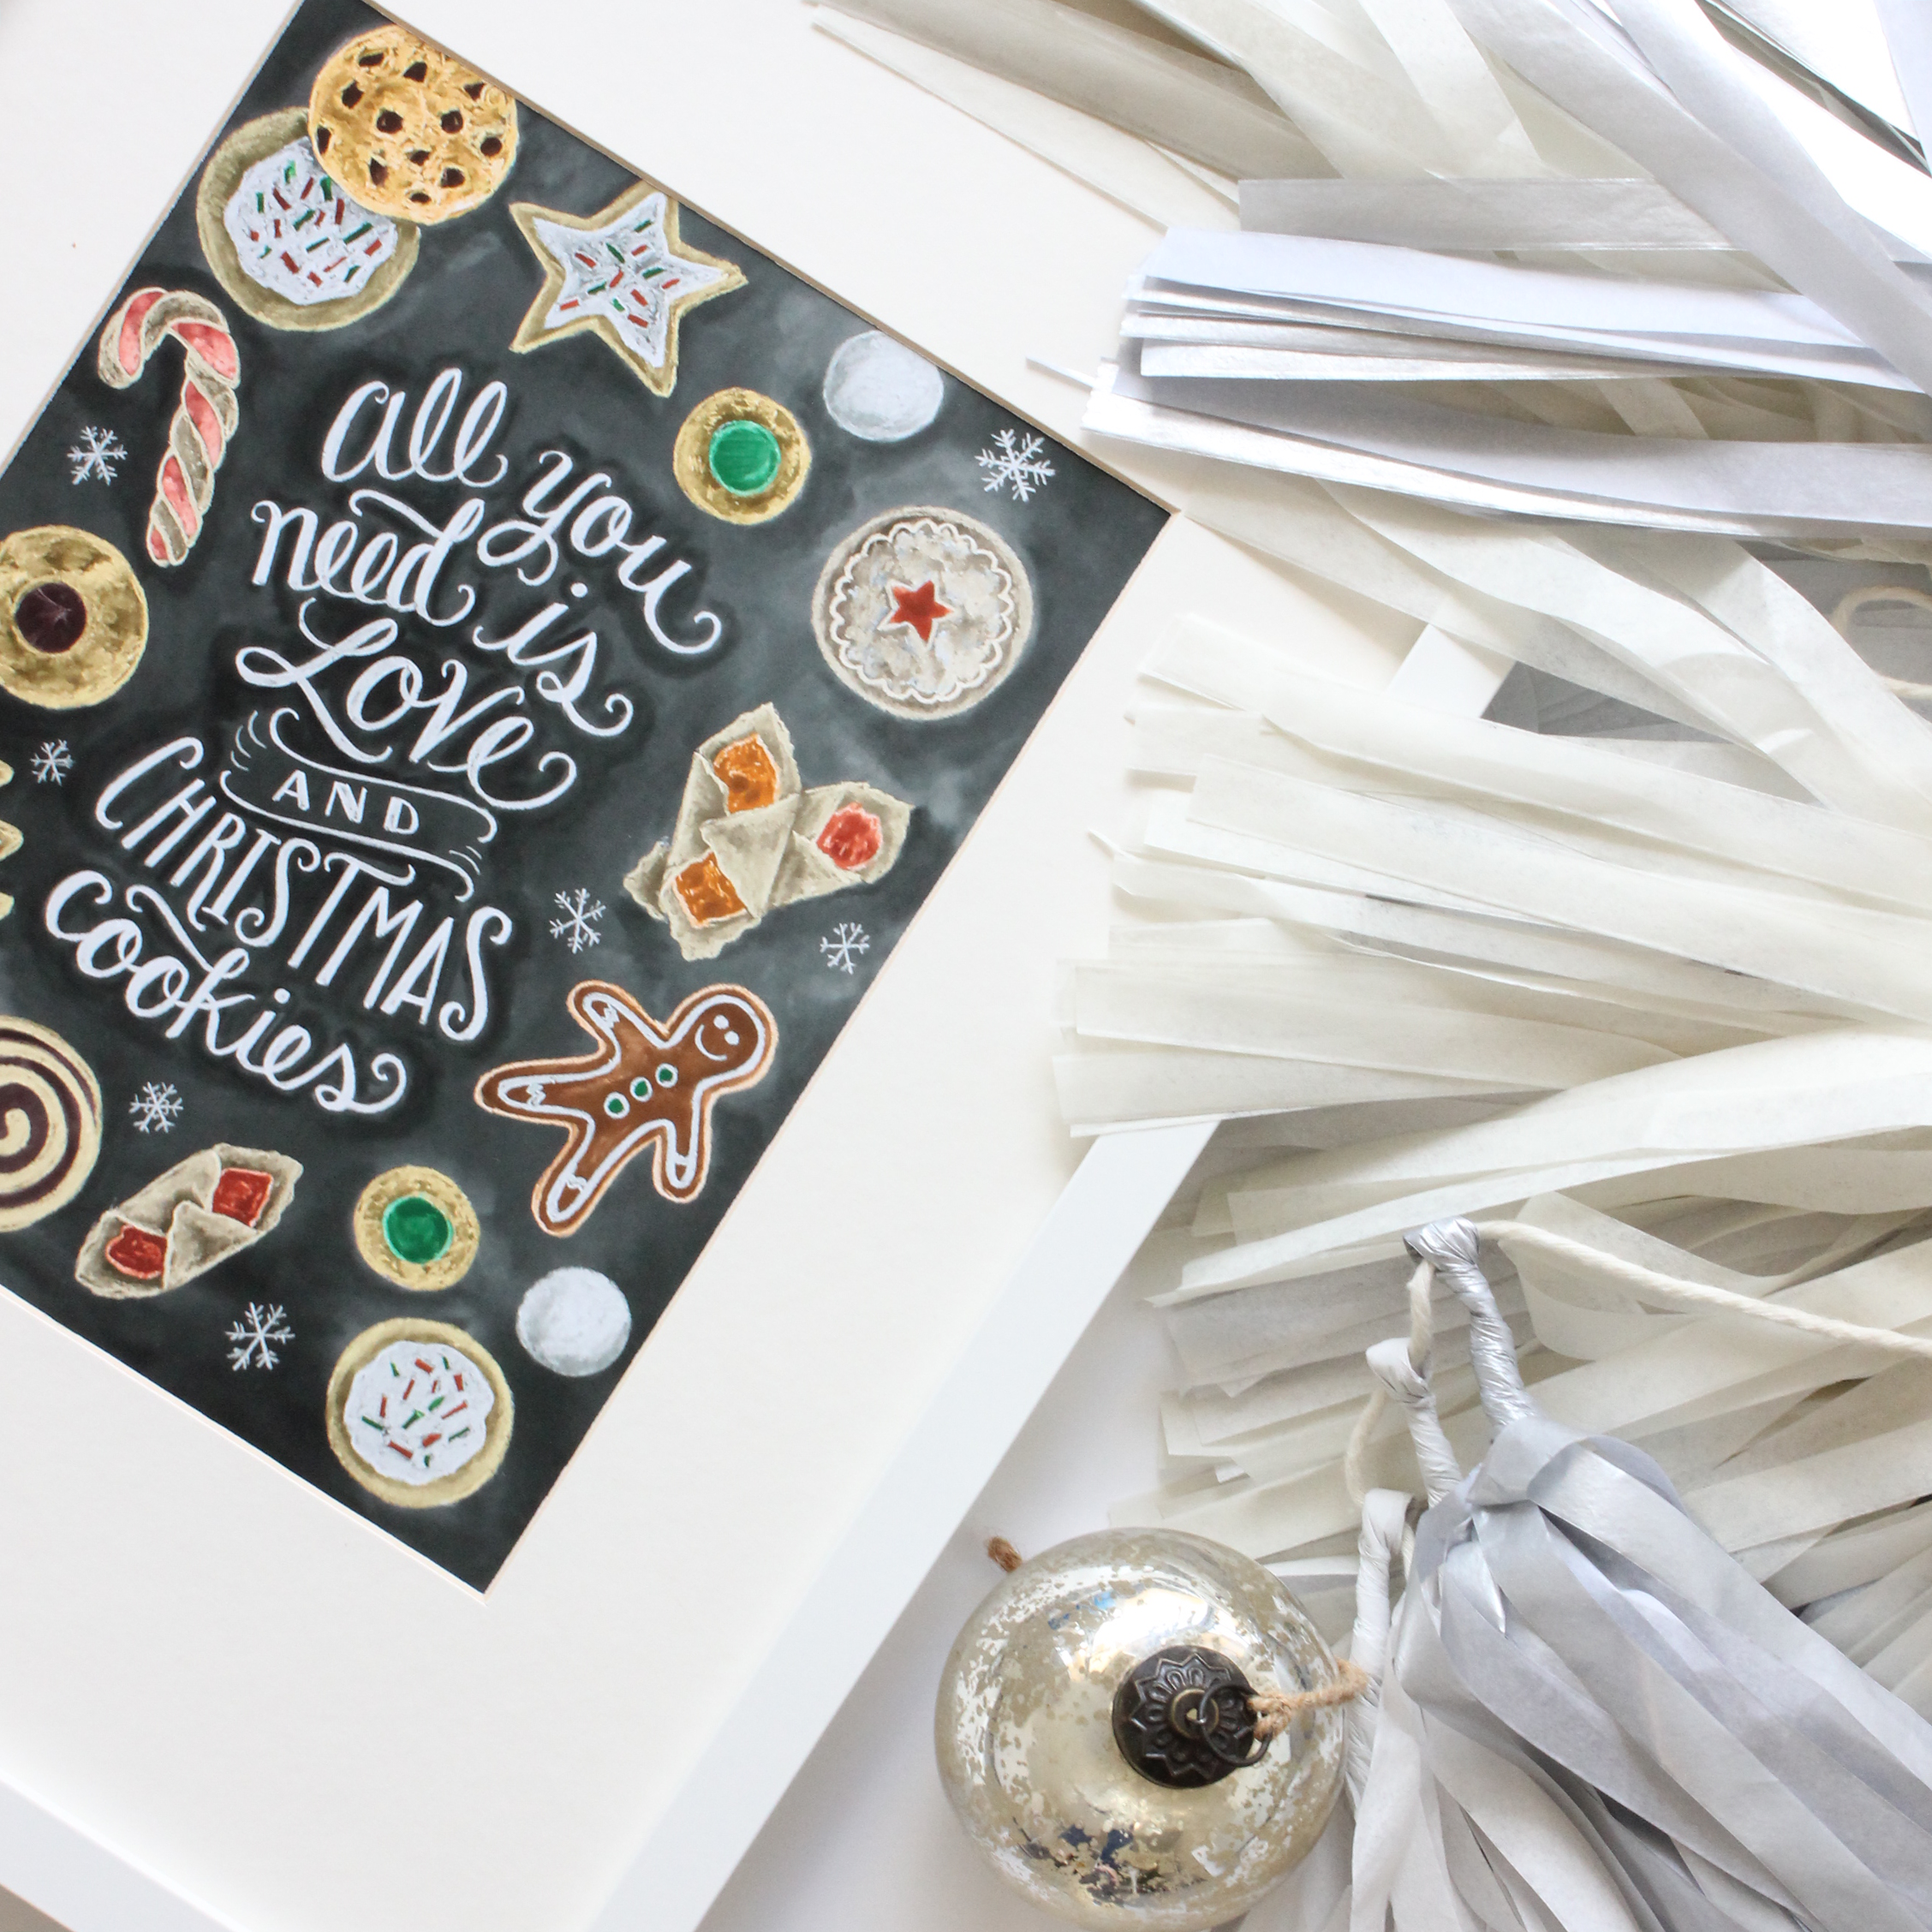 Perfect cookie exchange party decor - Lily & Val Love and Christmas Cookies Chalk Art Print and Flair Exchange tassel garland